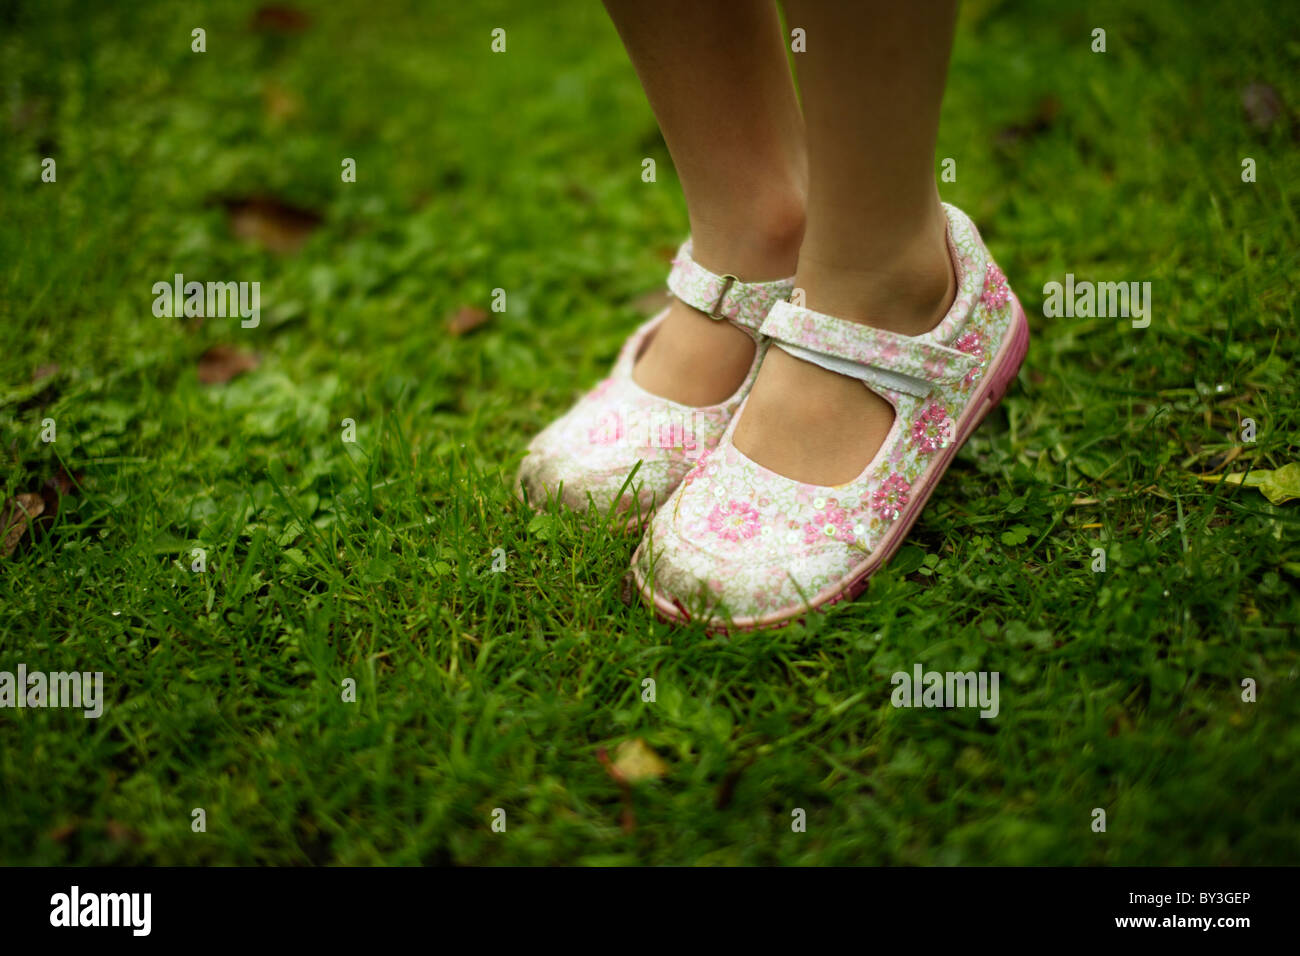 Girl's glittery shoes on lawn Stock Photo